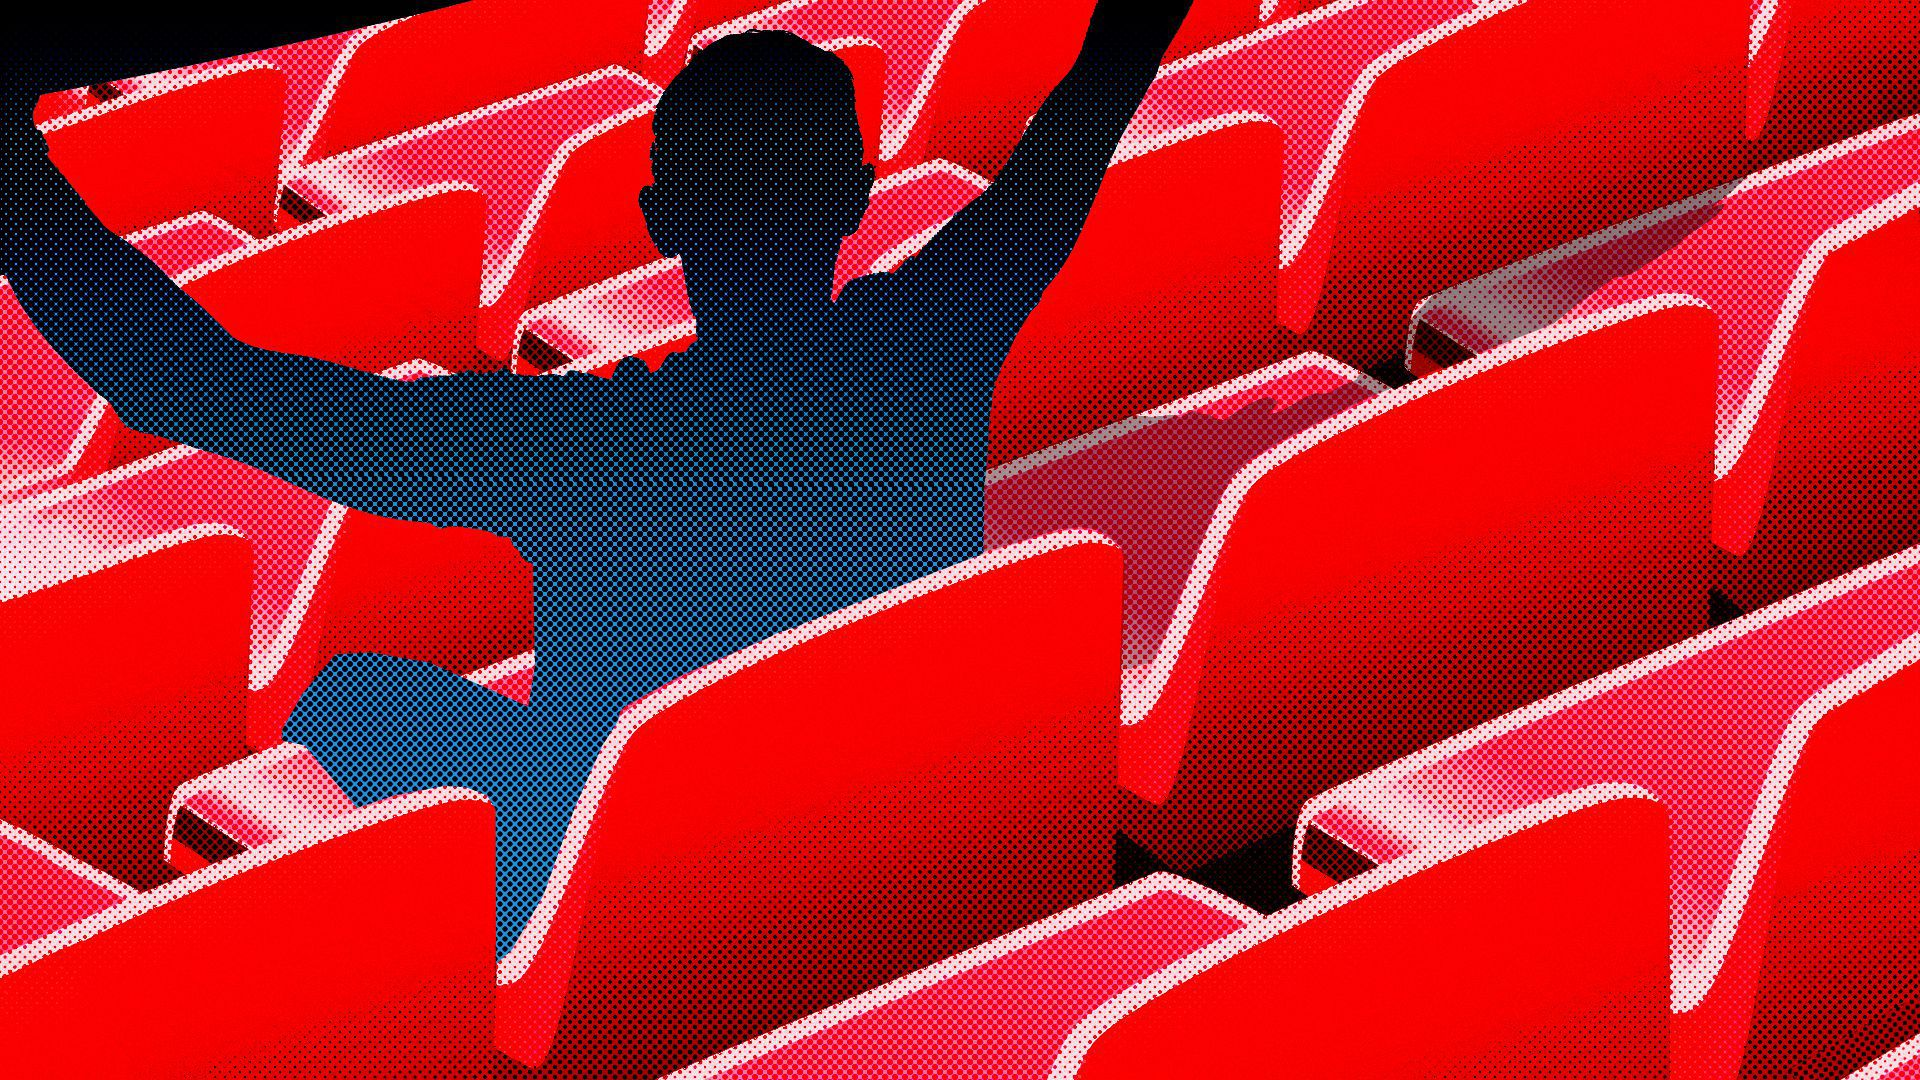 Illustration of an empty stadium filled only by the silhouette of an absent spectator